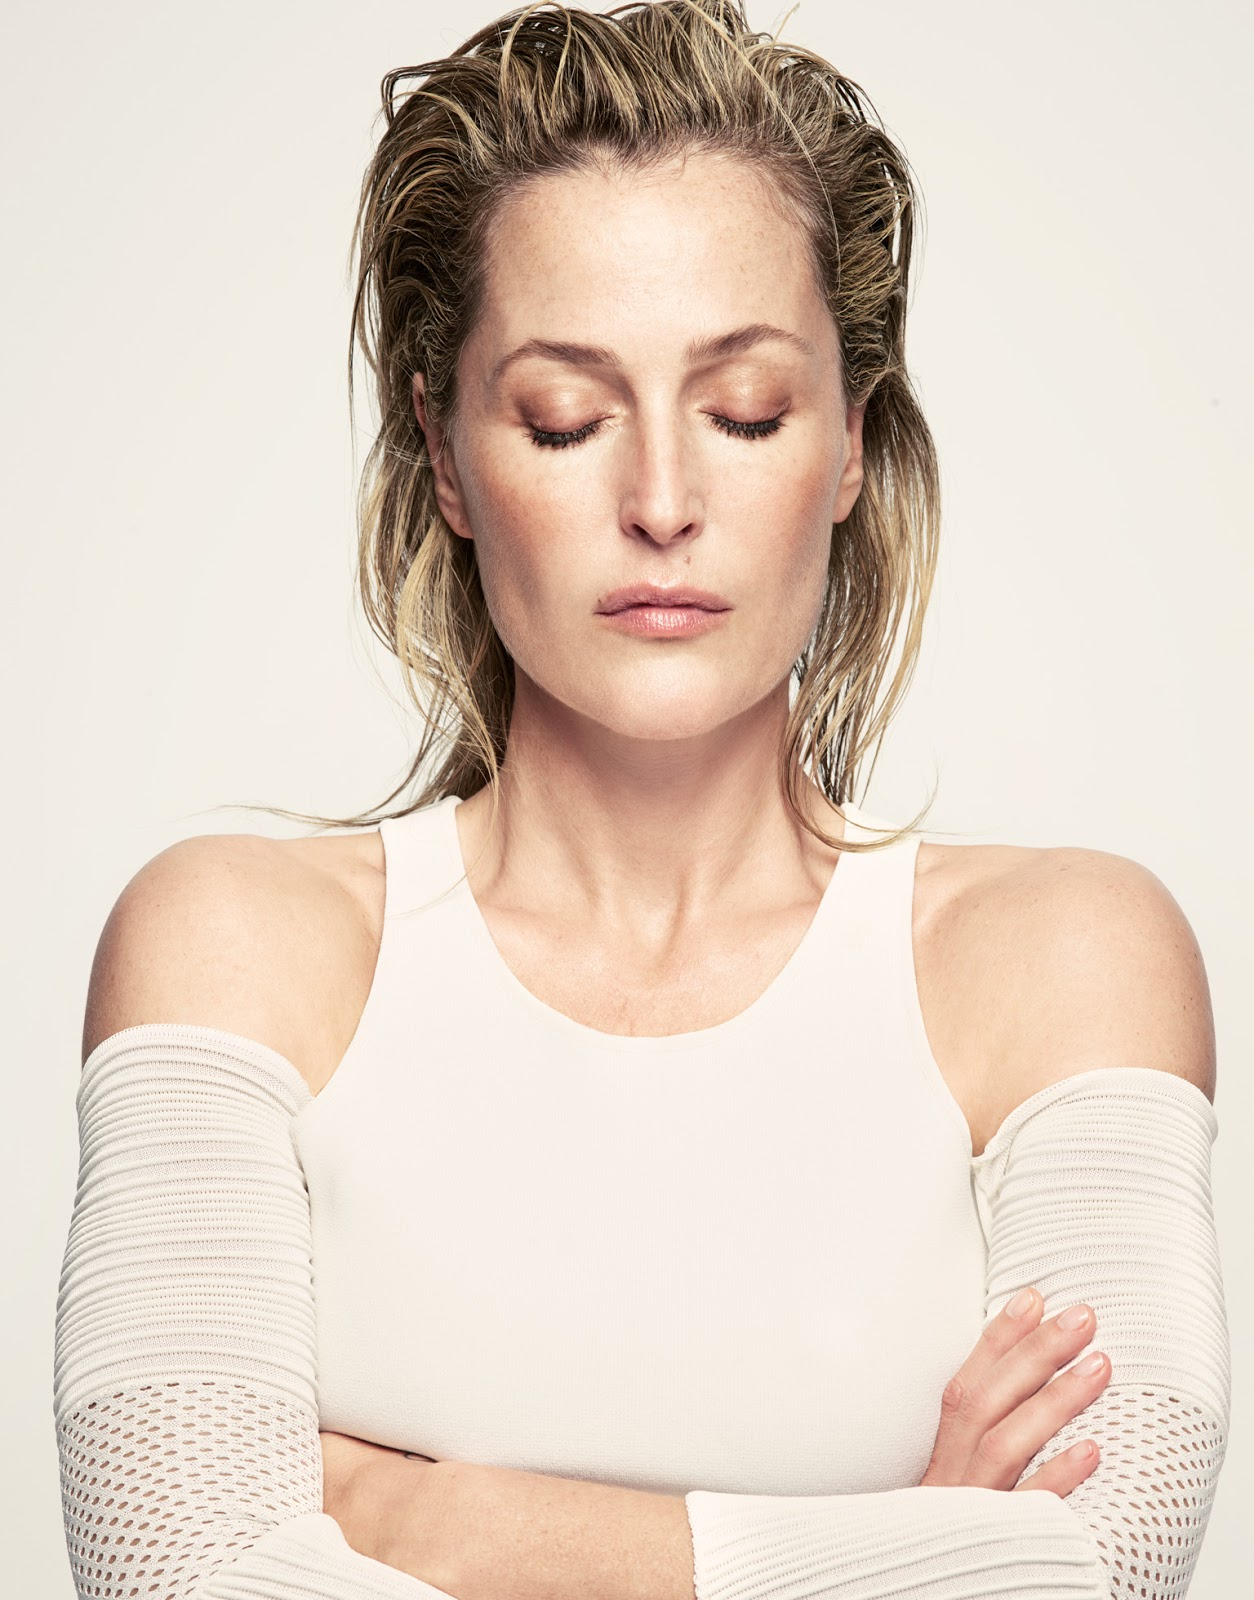 gillian anderson - photo #6